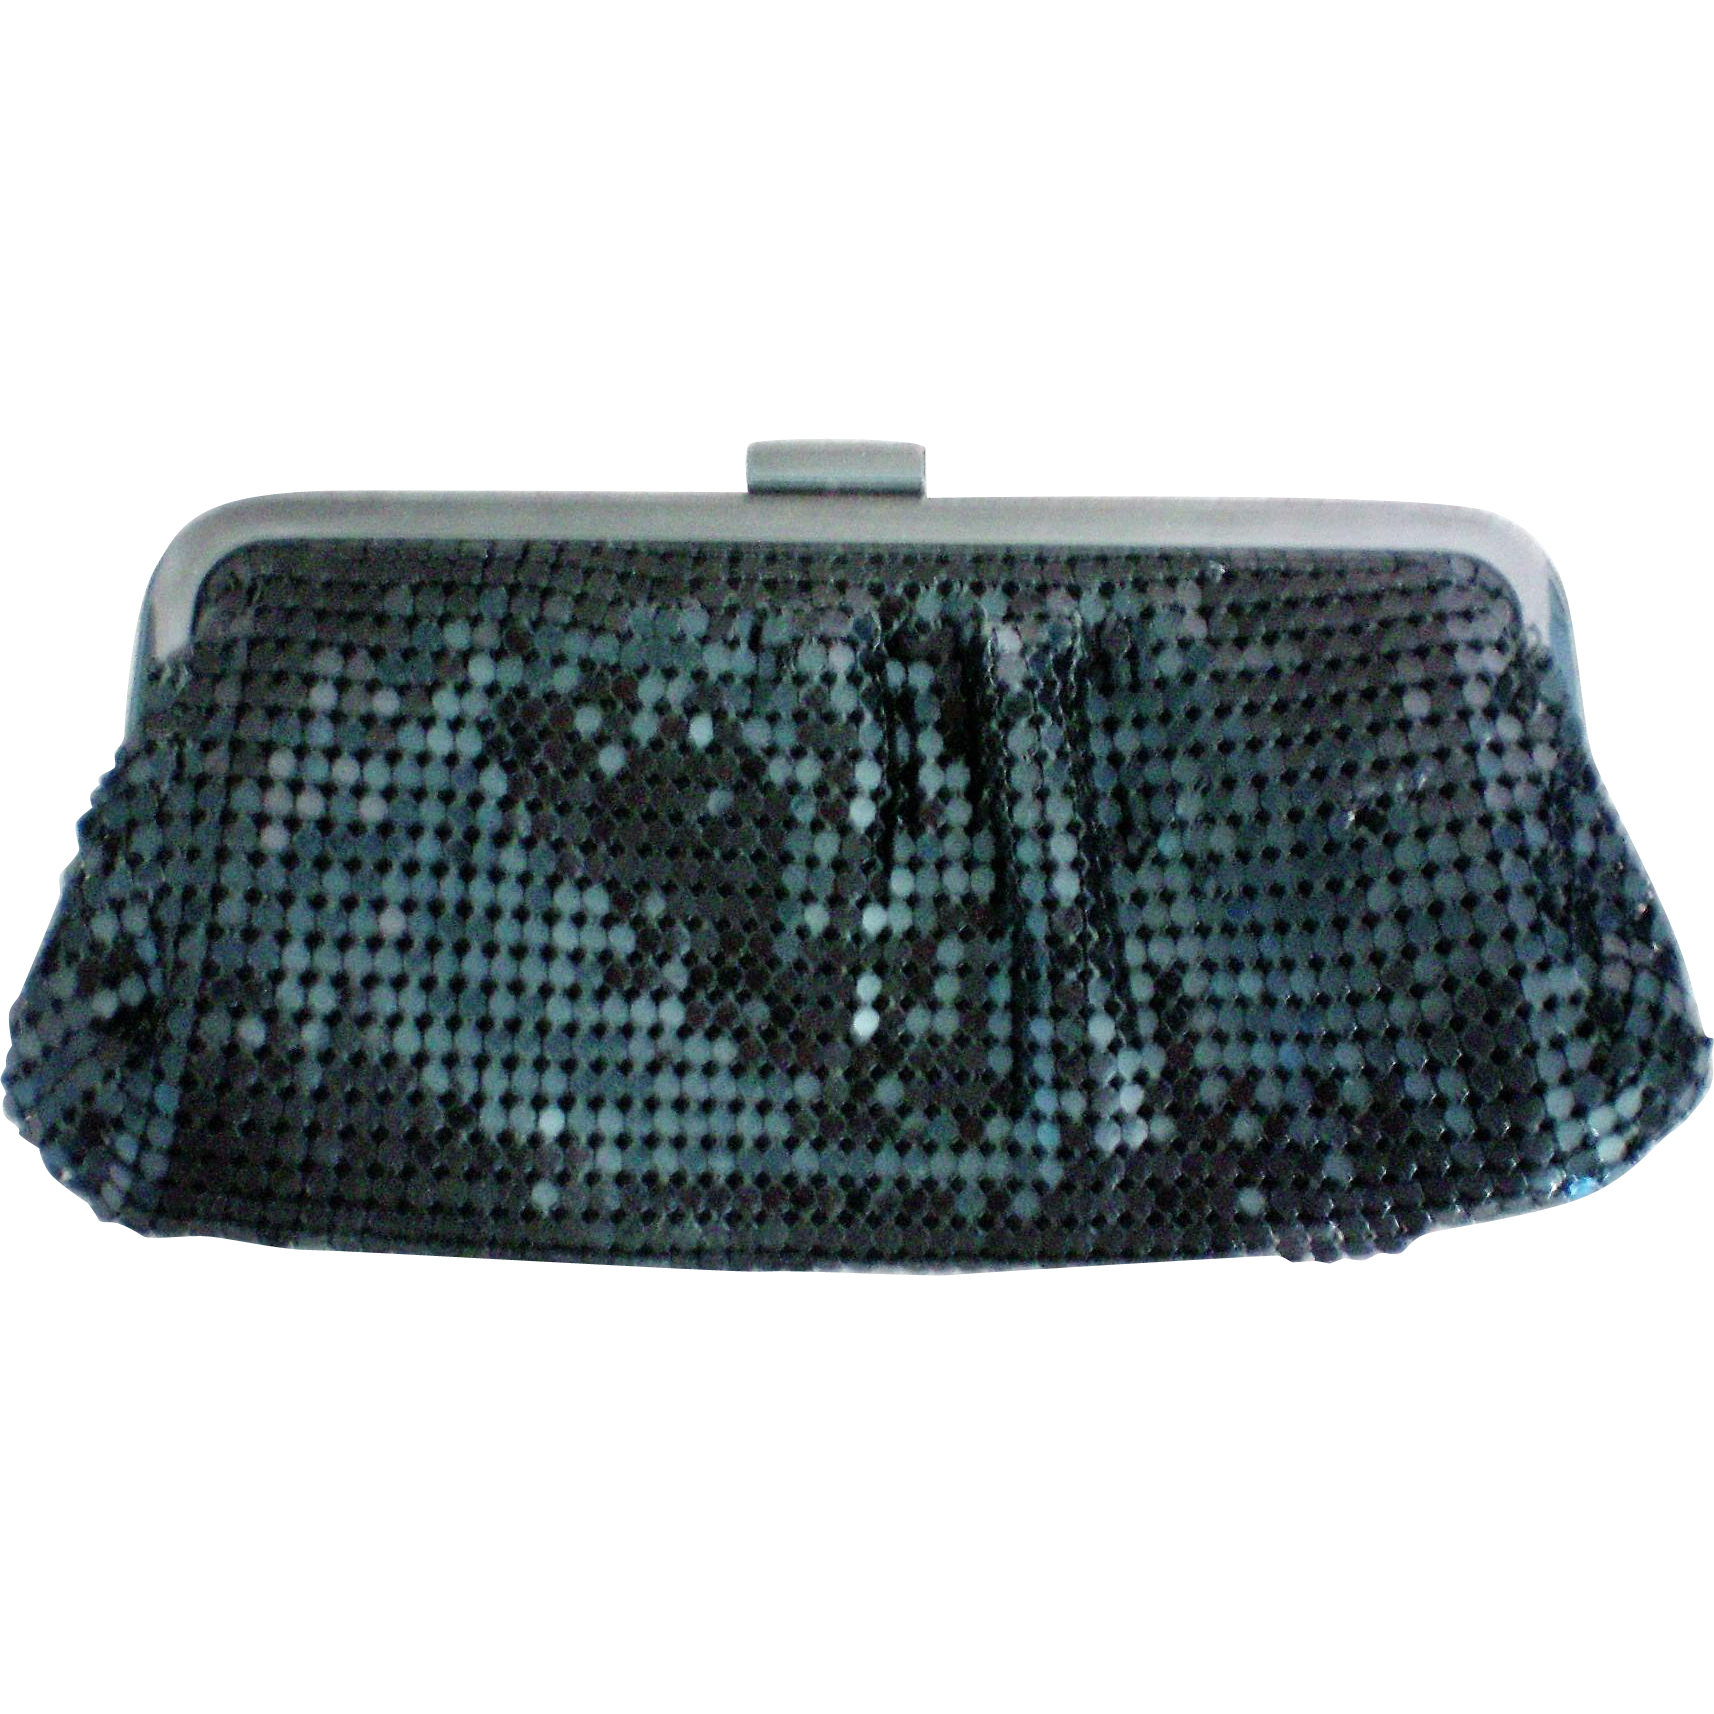 Small Black Metal Mesh Shoulder or Clutch Evening Bag